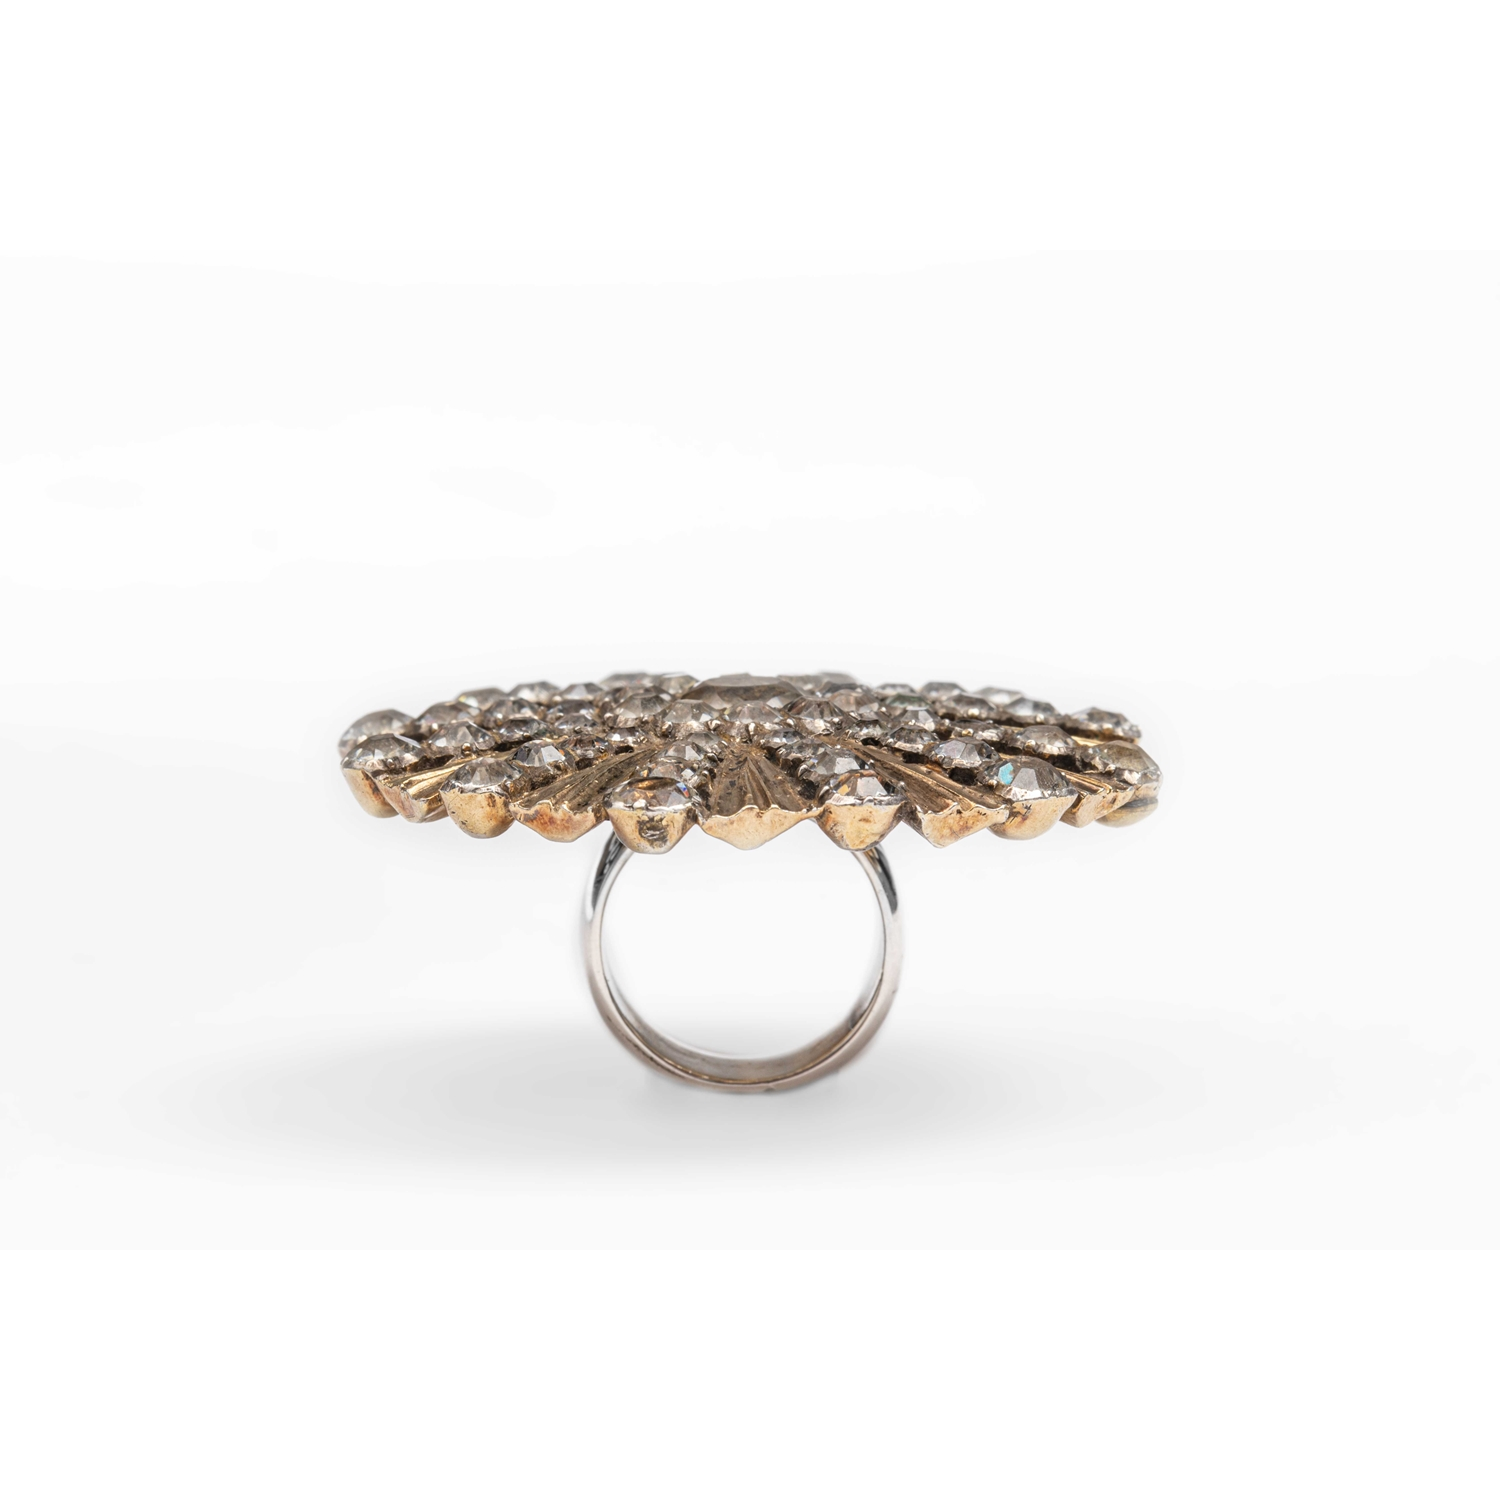 UNIQUE RING WITH A BAROQUE BROOCHE